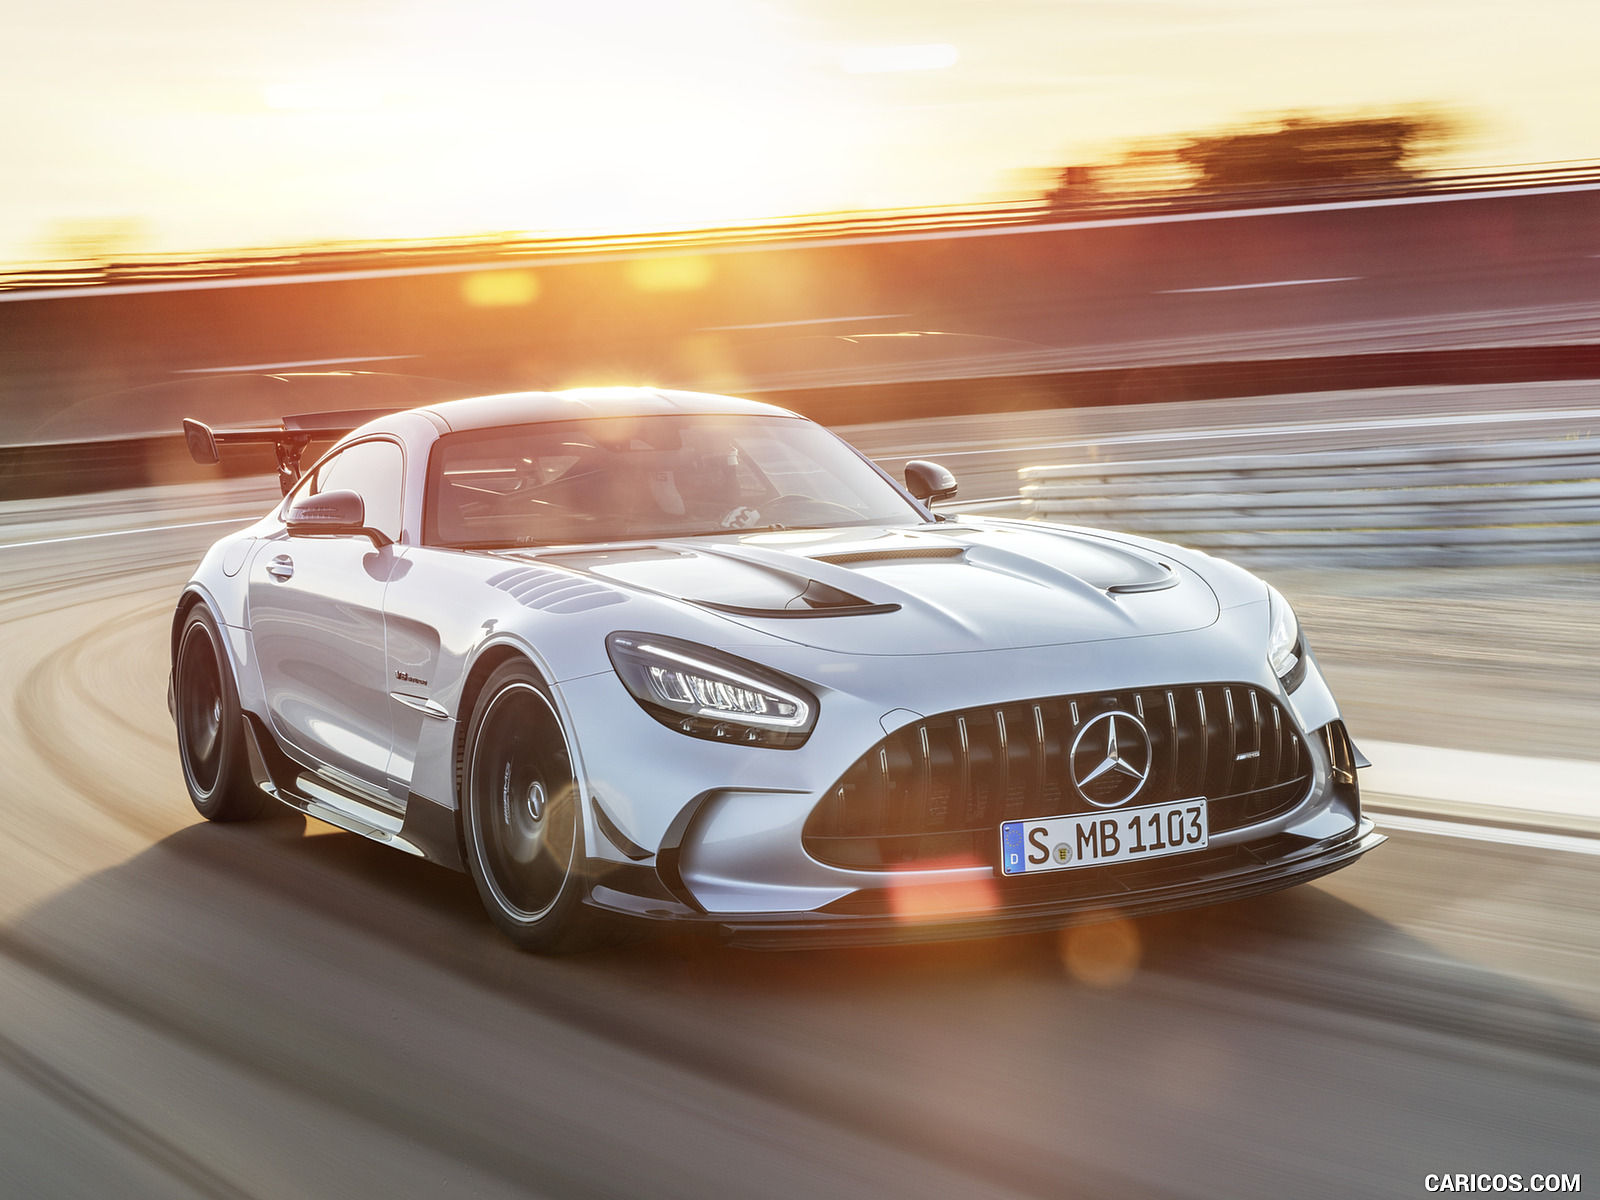 2021 Mercedes Benz Amg Gt Price Review And Buying Guide Carindigo Com